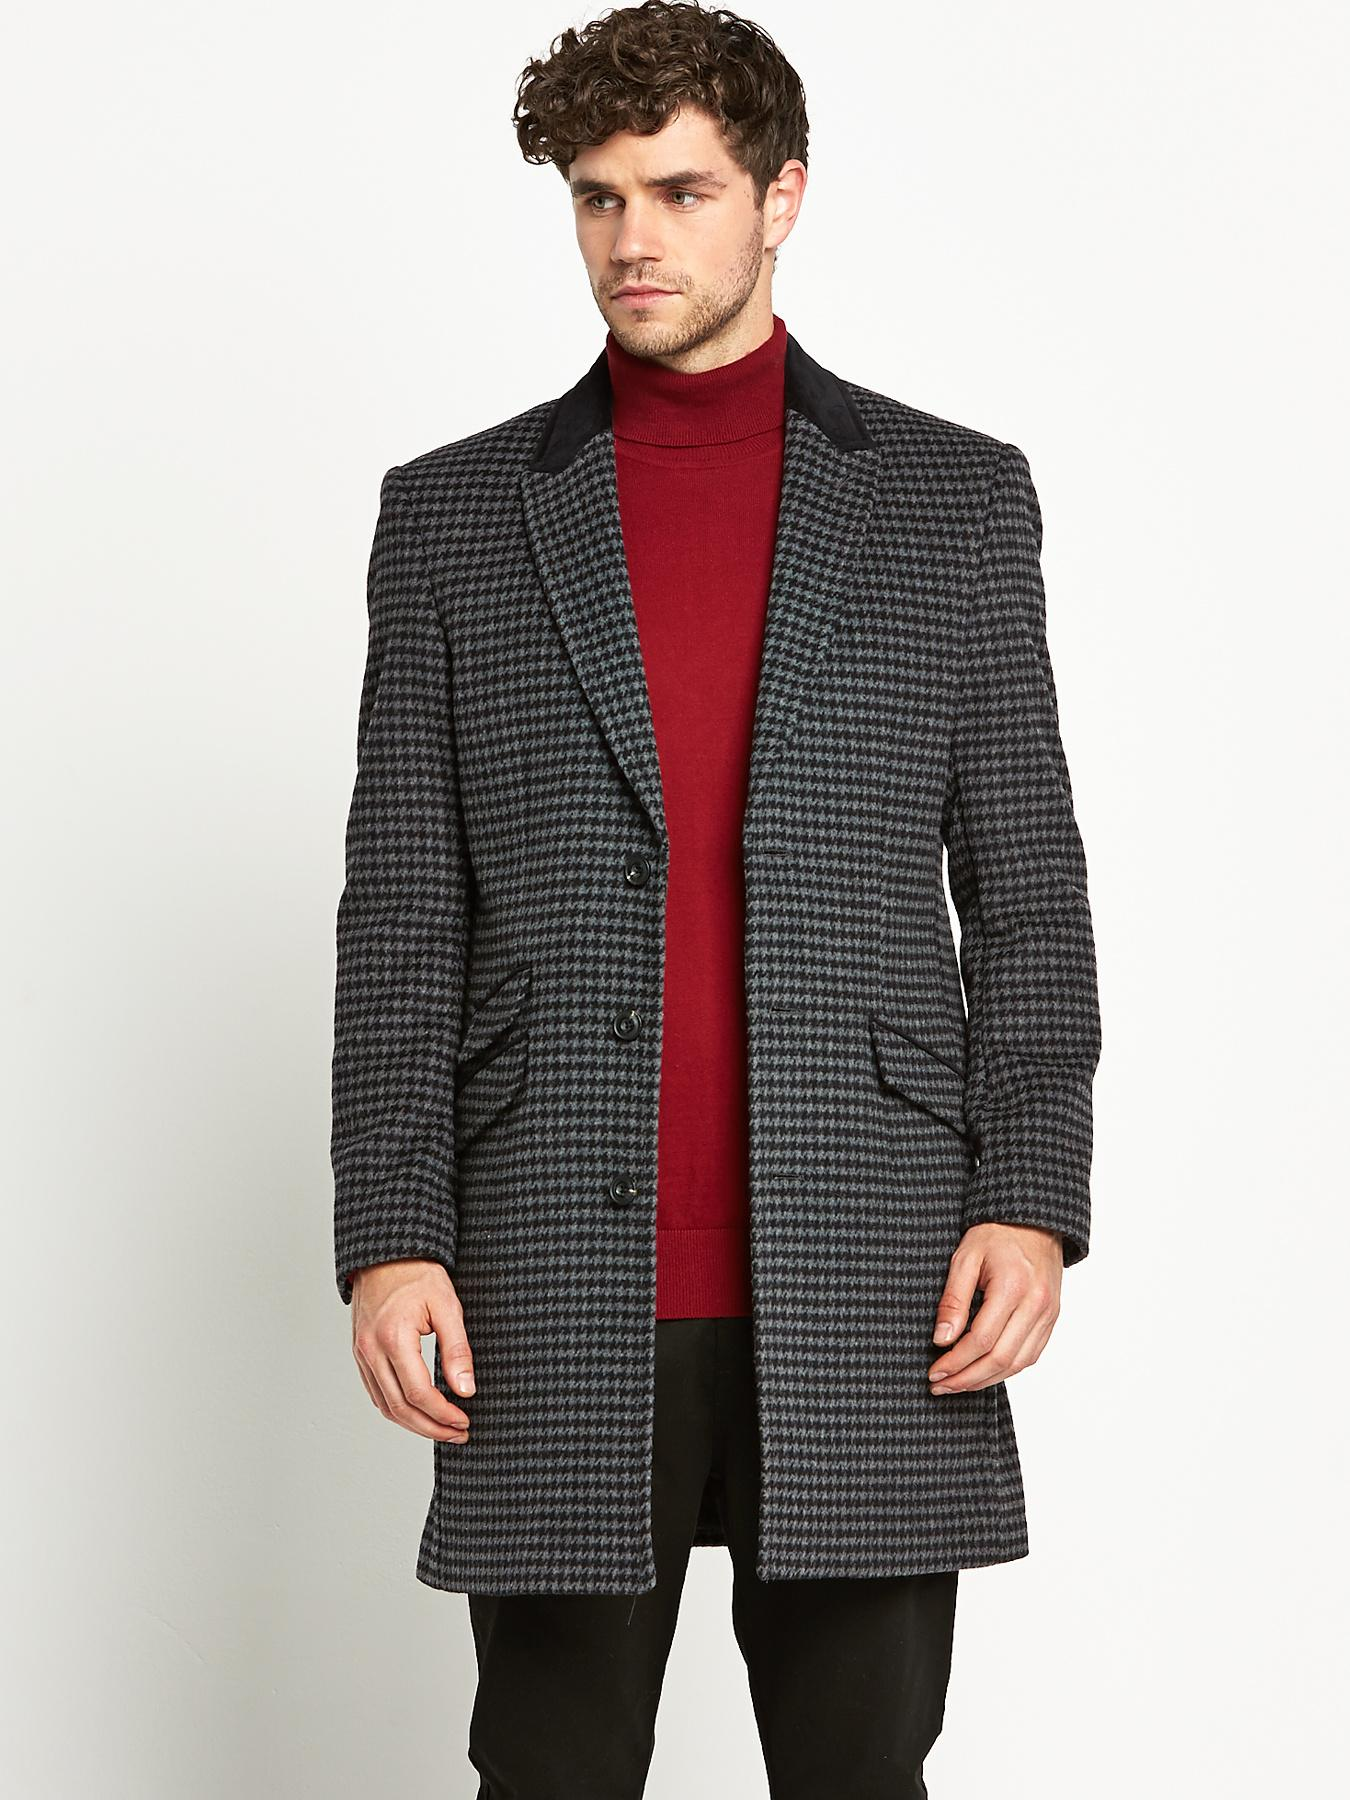 Taylor & Reece Mens Check Overcoat - Grey, Grey